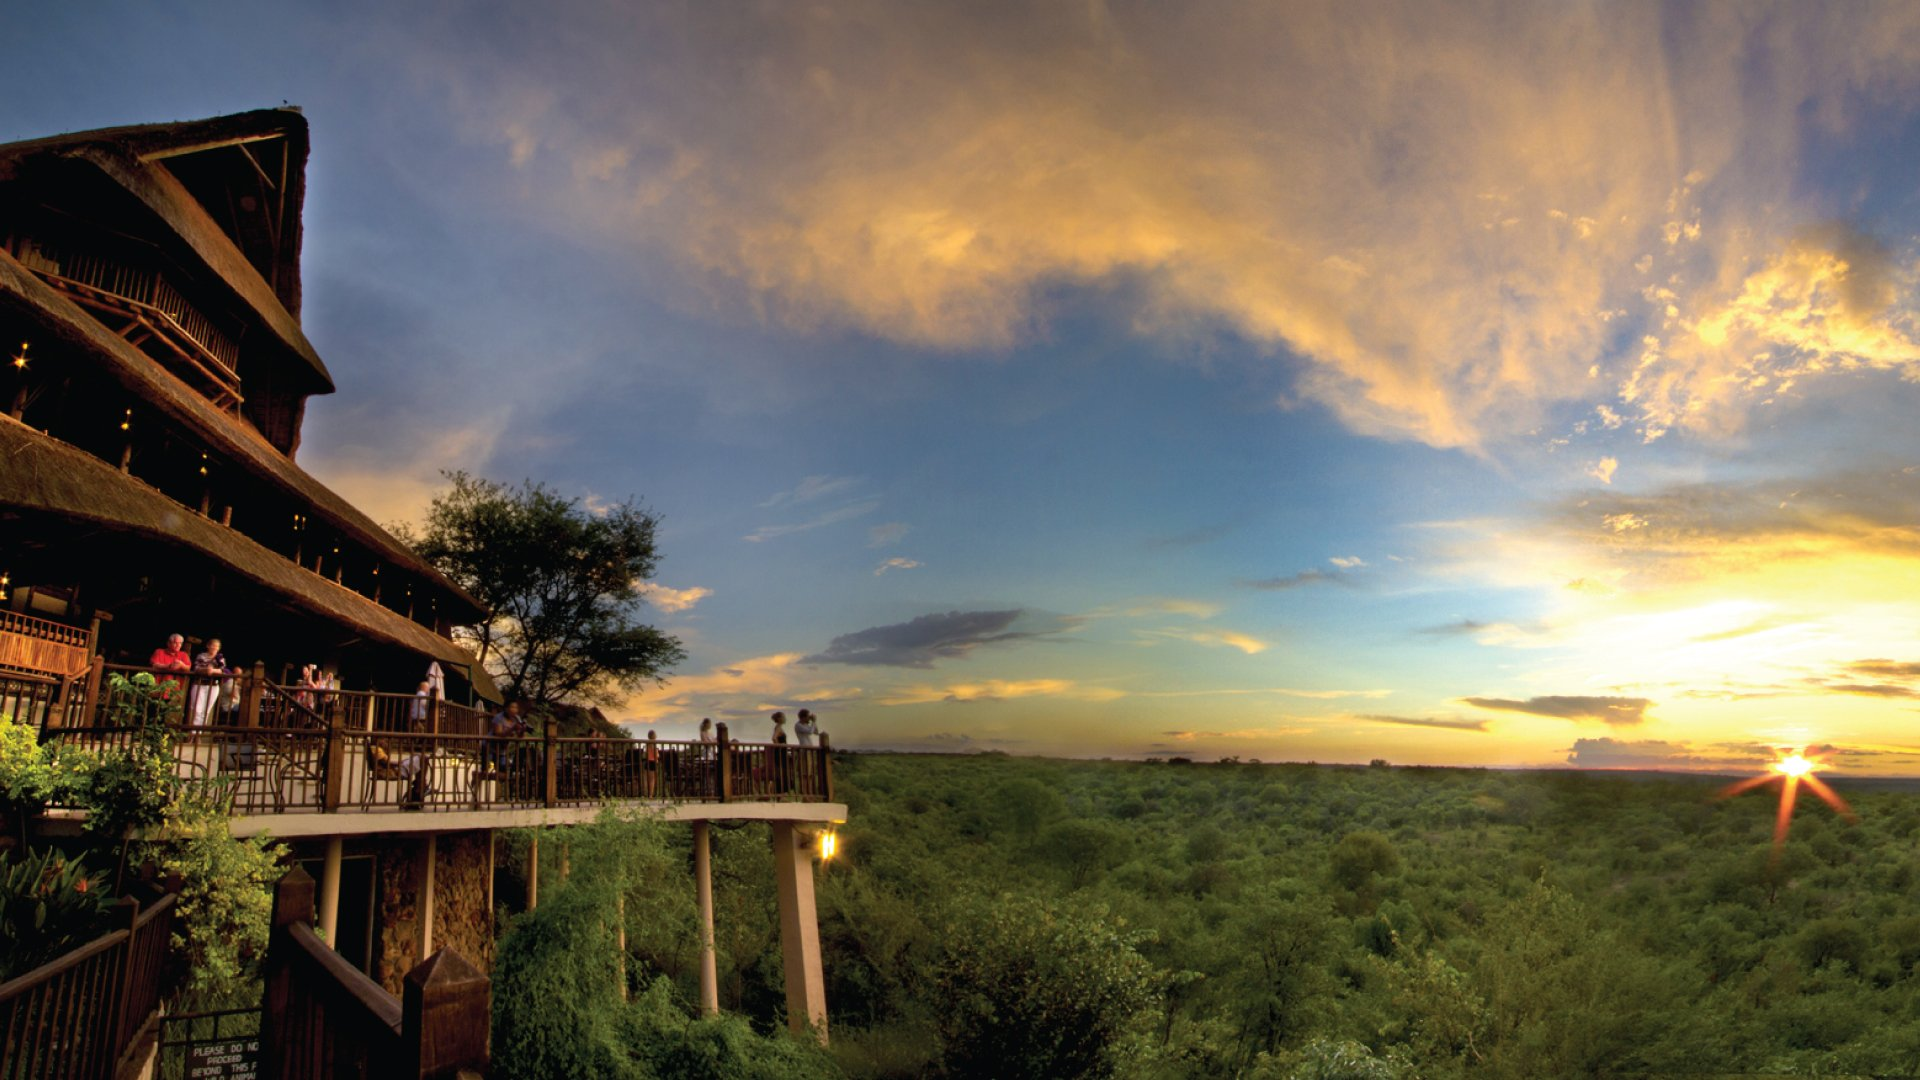 Victoria-Falls-Safari-Lodge-Hotel-sunset